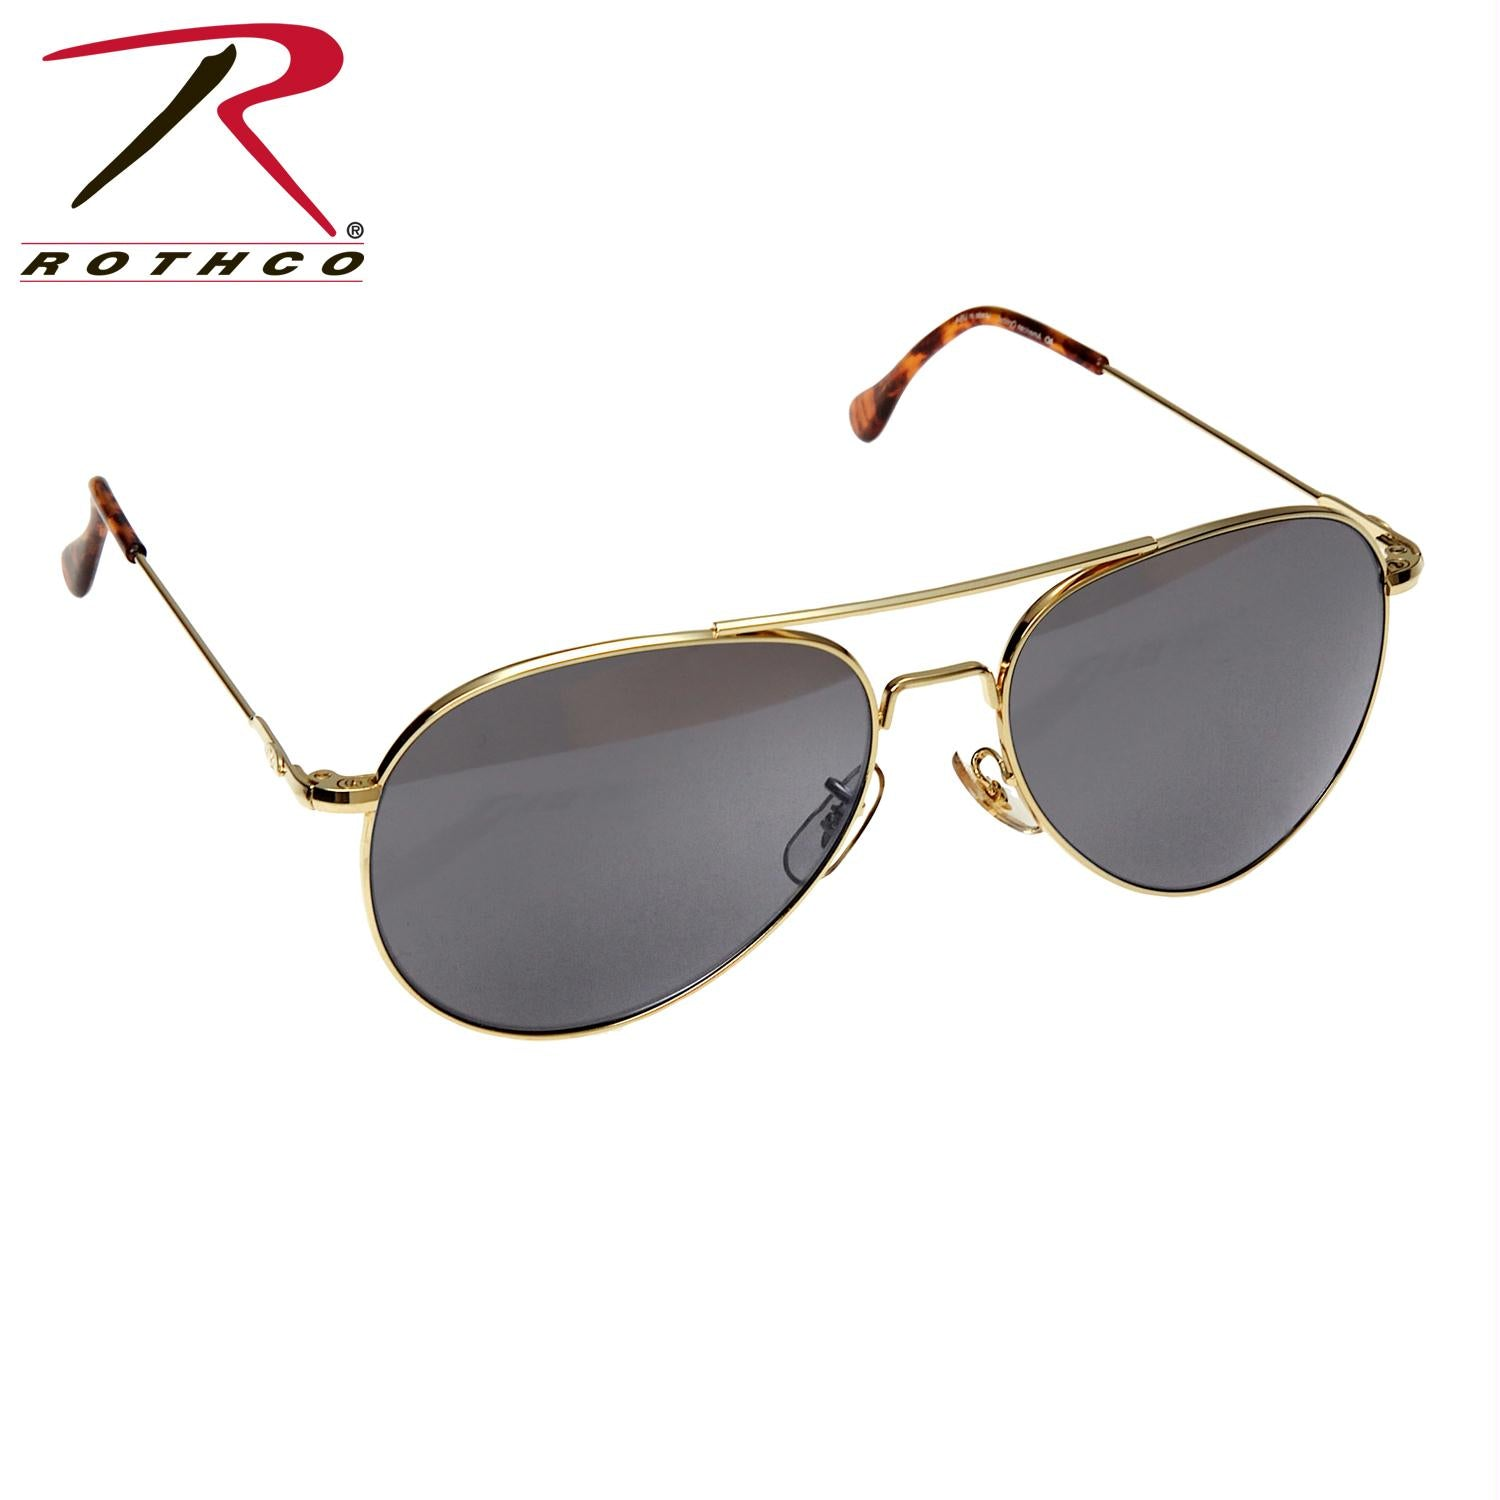 American Optical 58MM General Aviator Sunglasses - Gold